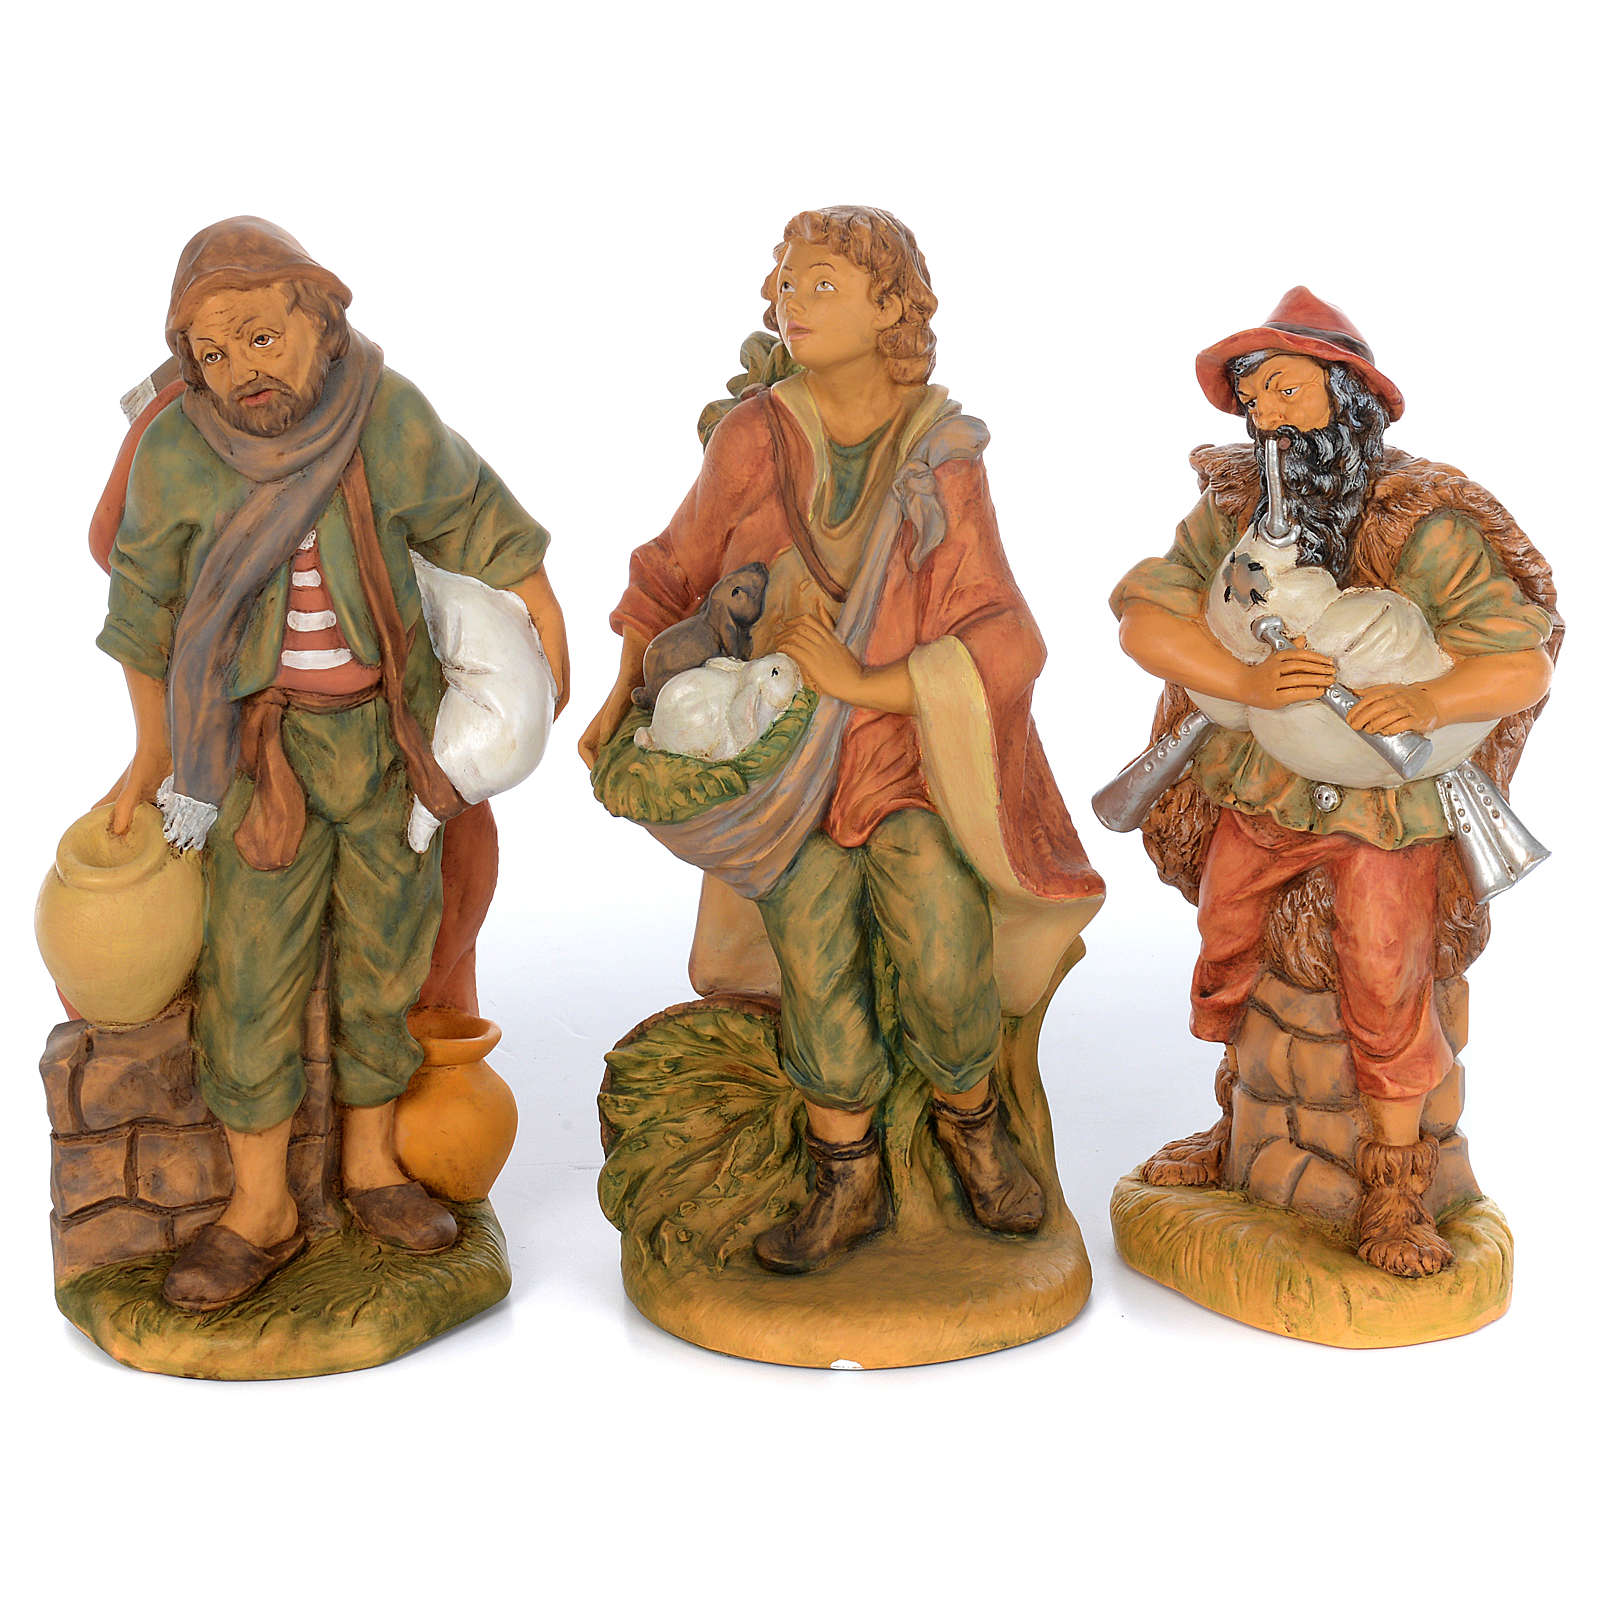 Pastori presepe 10 statue in materiale infrangibile 40 cm 4